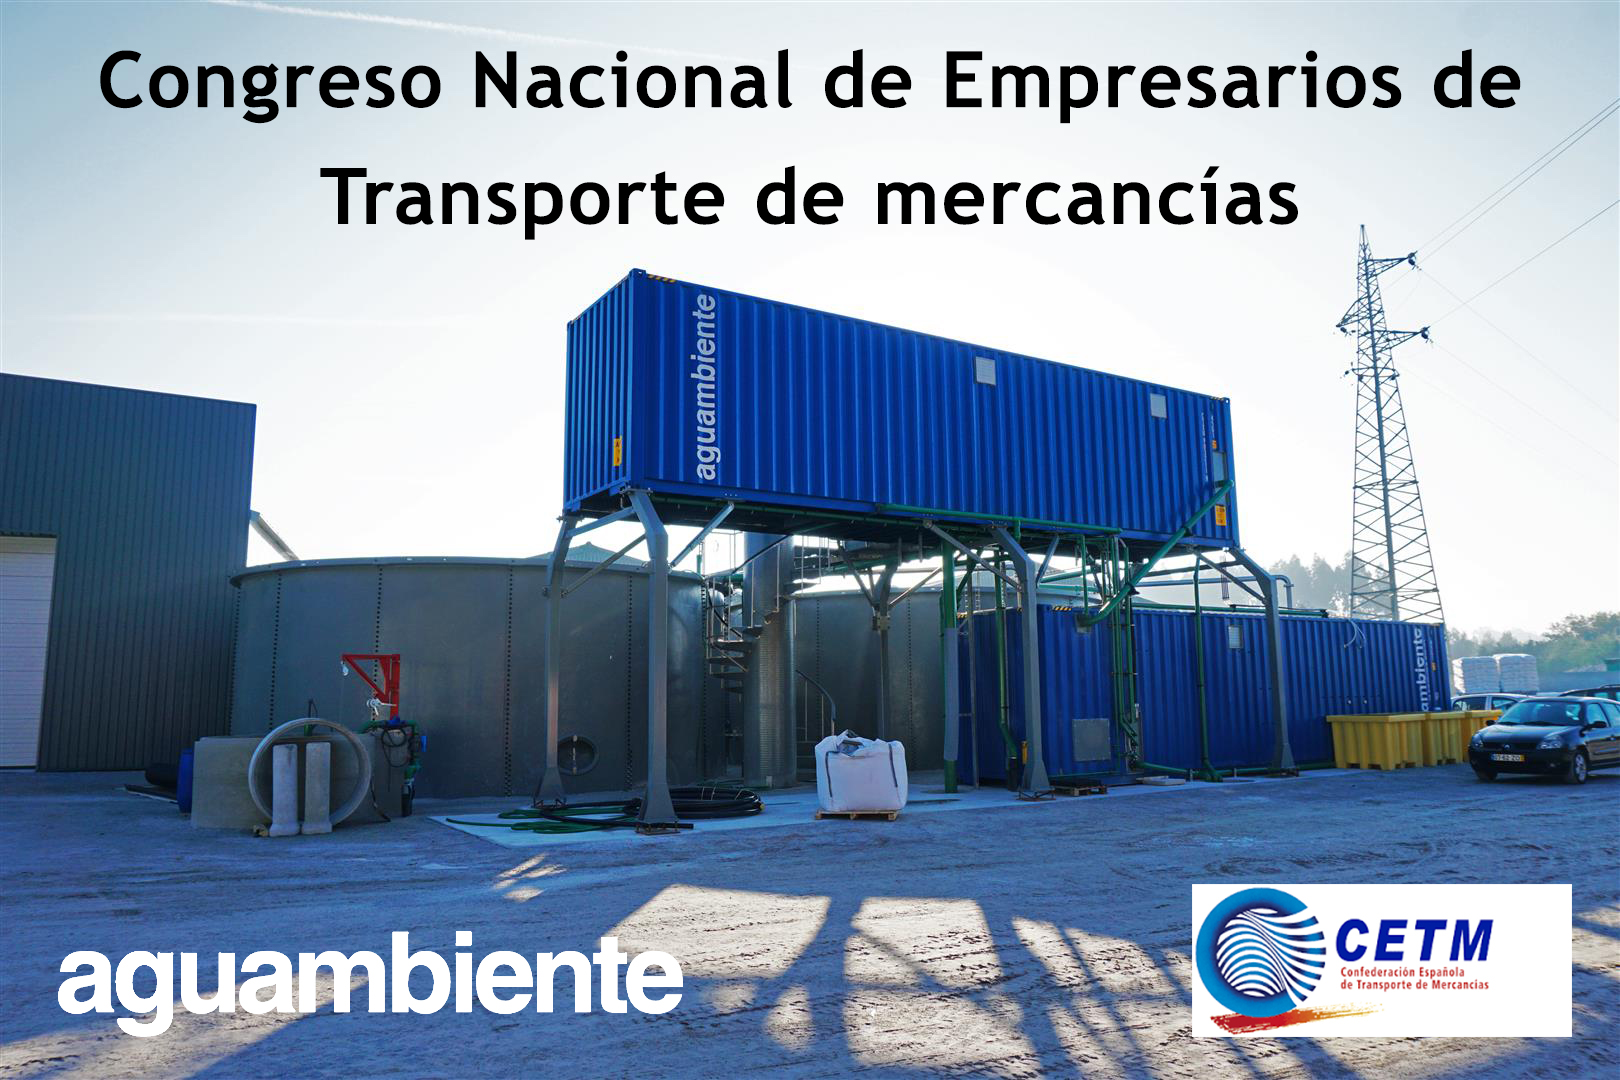 Aguambiente will attend the XVI National Congress of Transport